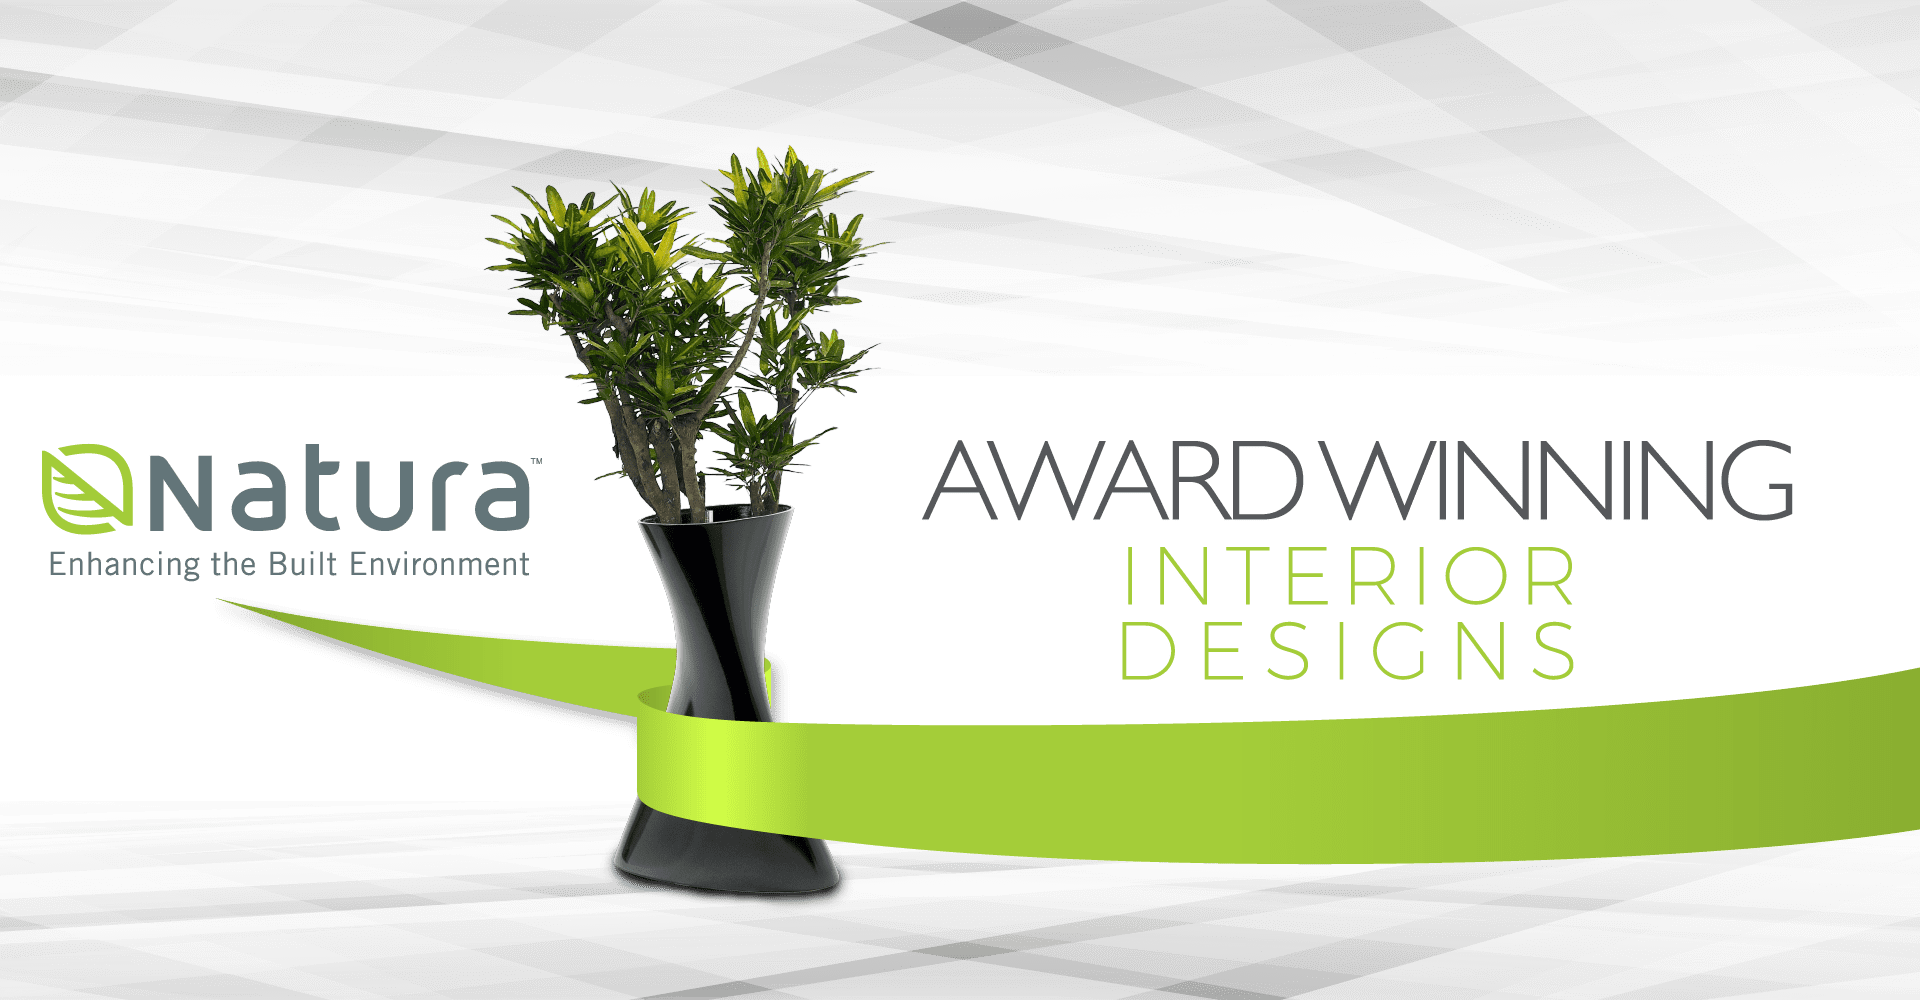 Natura | Award Winning Plant Designs